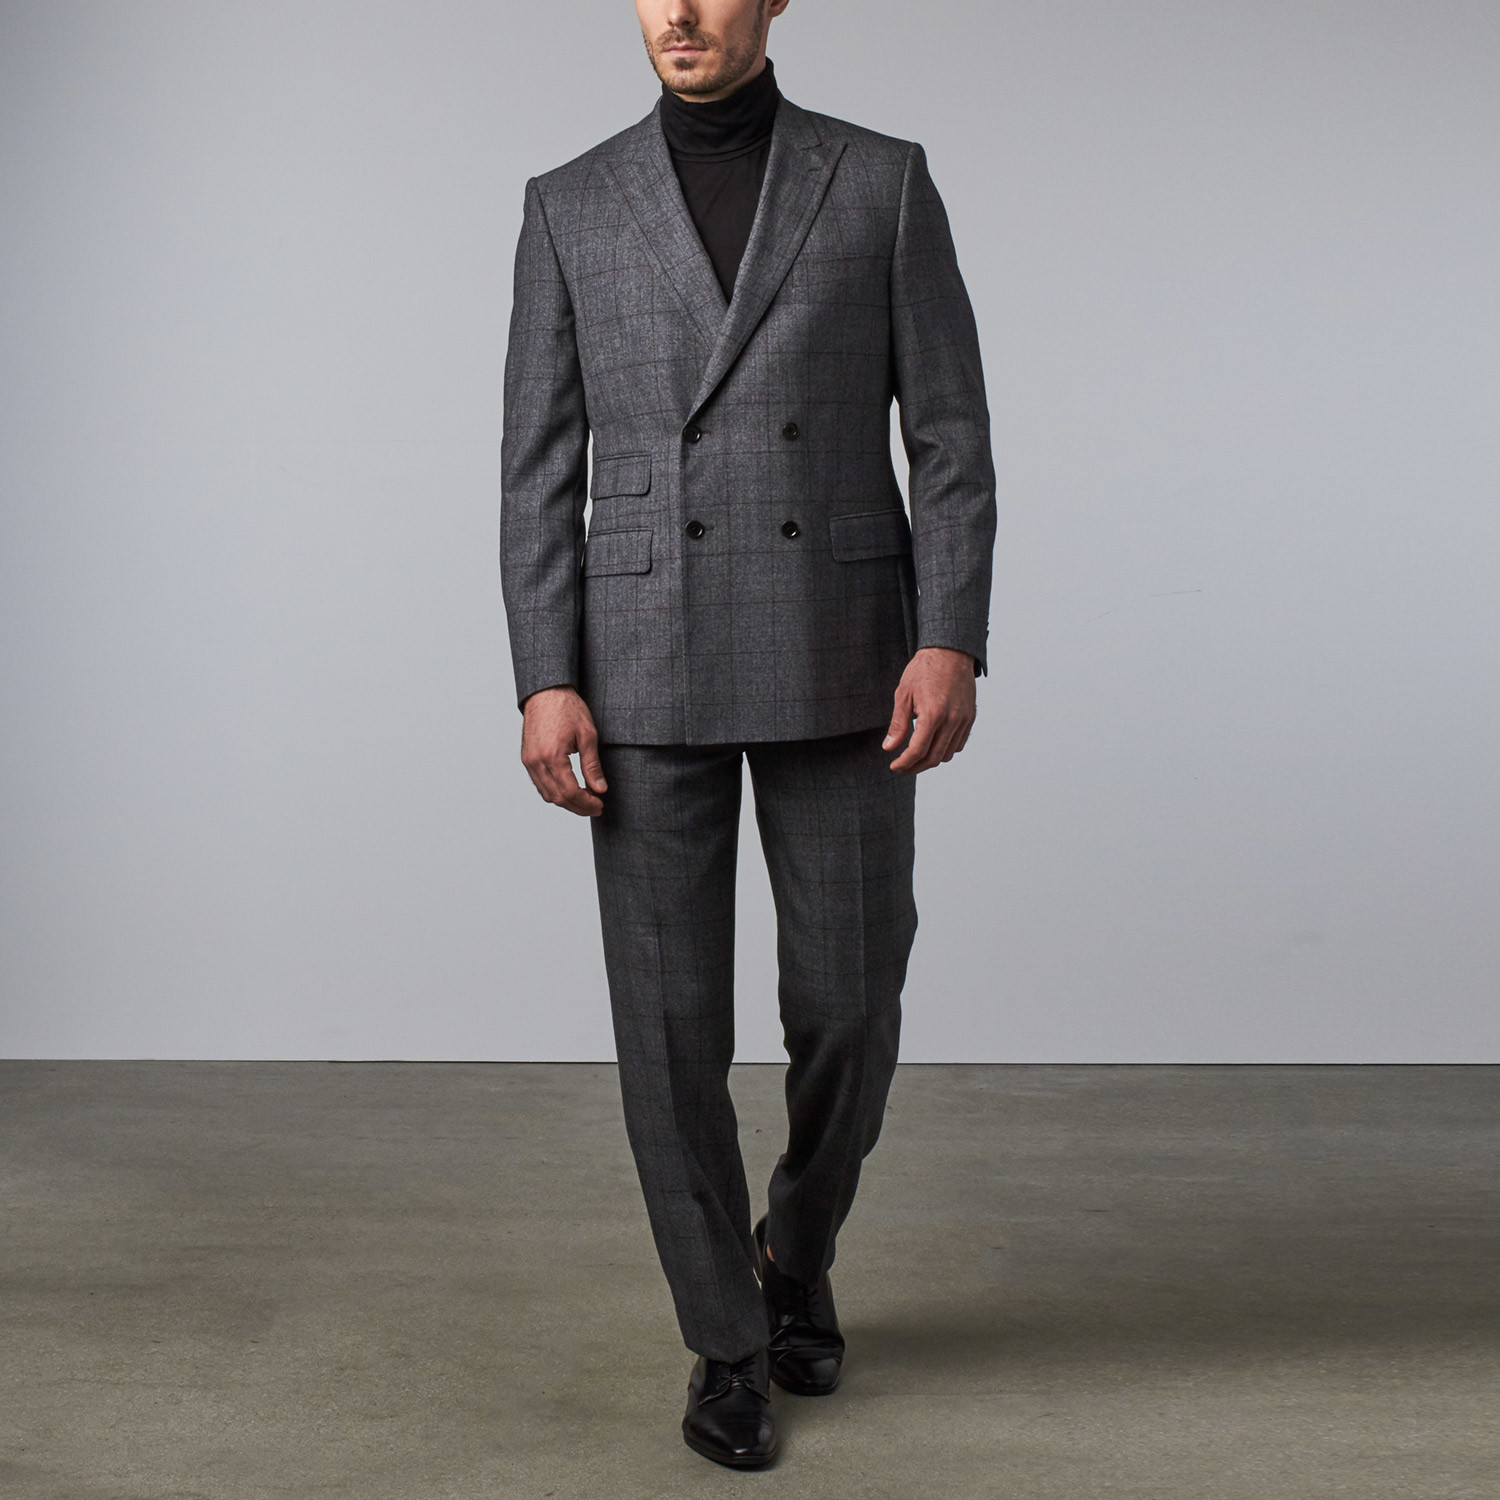 Image result for images of Double-Breasted Suit and Peak Lapel